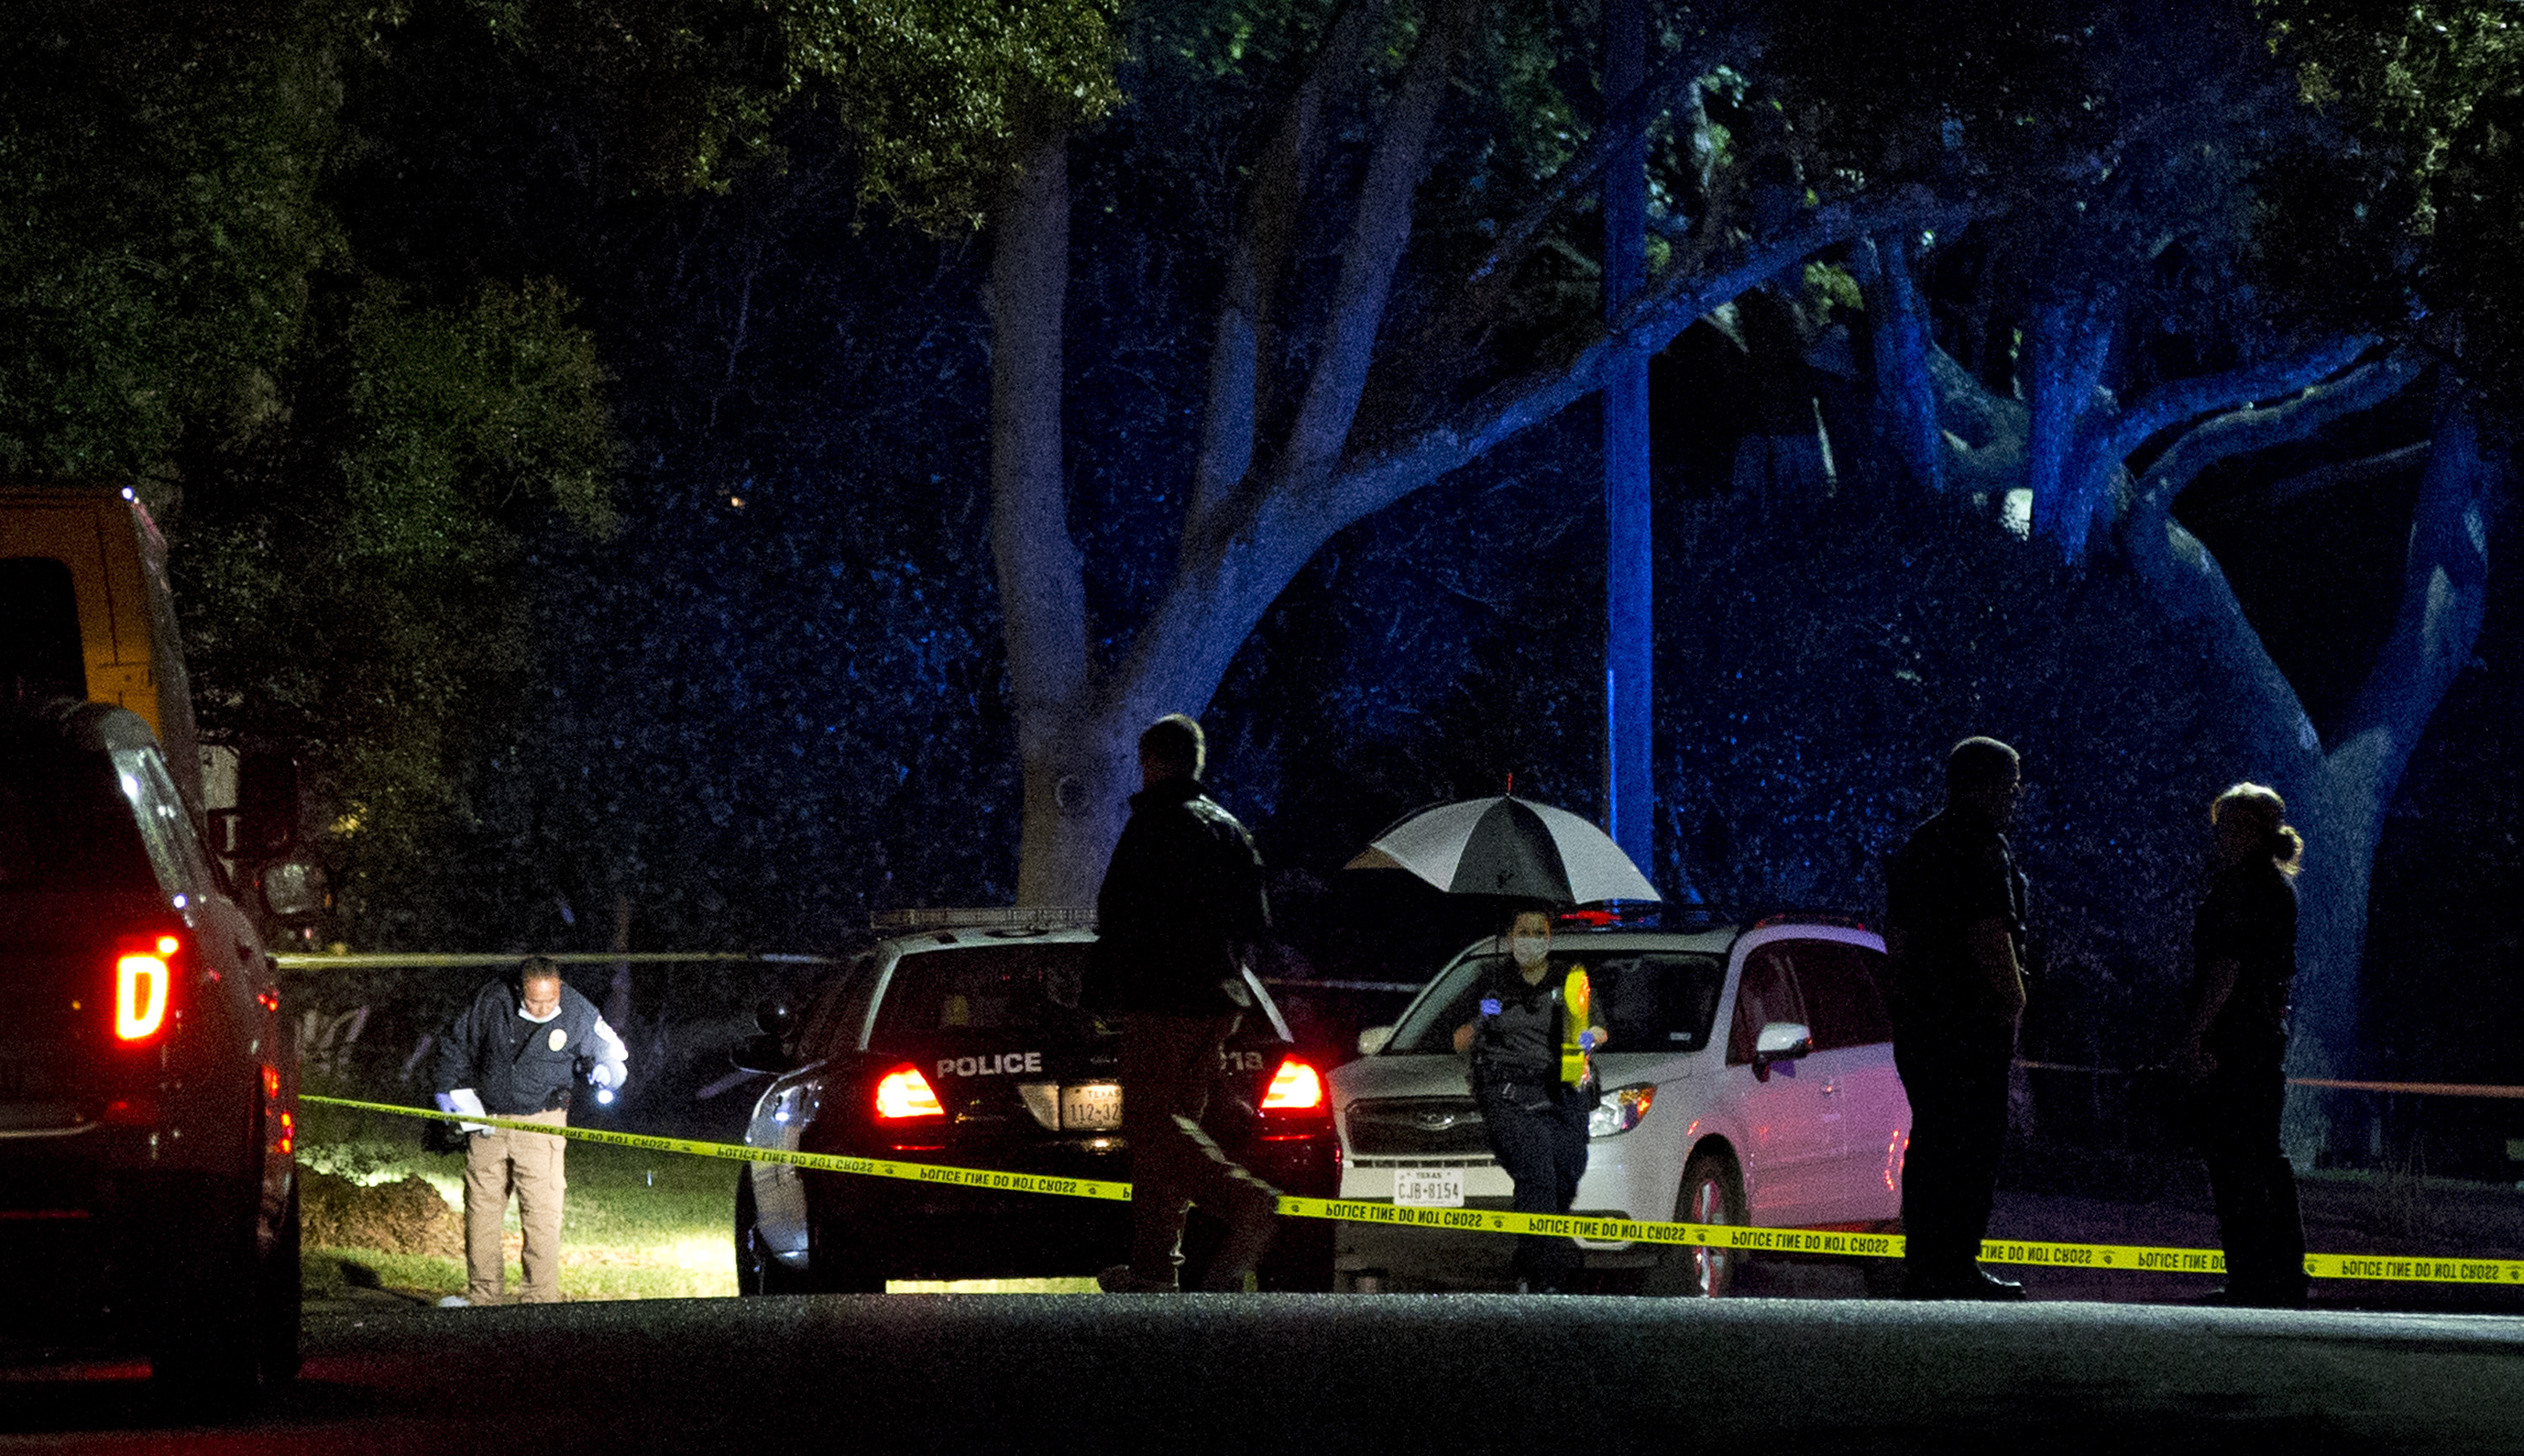 Authorities investigate the scene Saturday, November 7, 2015, where District Judge Julie Kocurek was shot on Friday night in the driveway of her home in Austin, Texas. Photo: Austin American-Statesman via AP